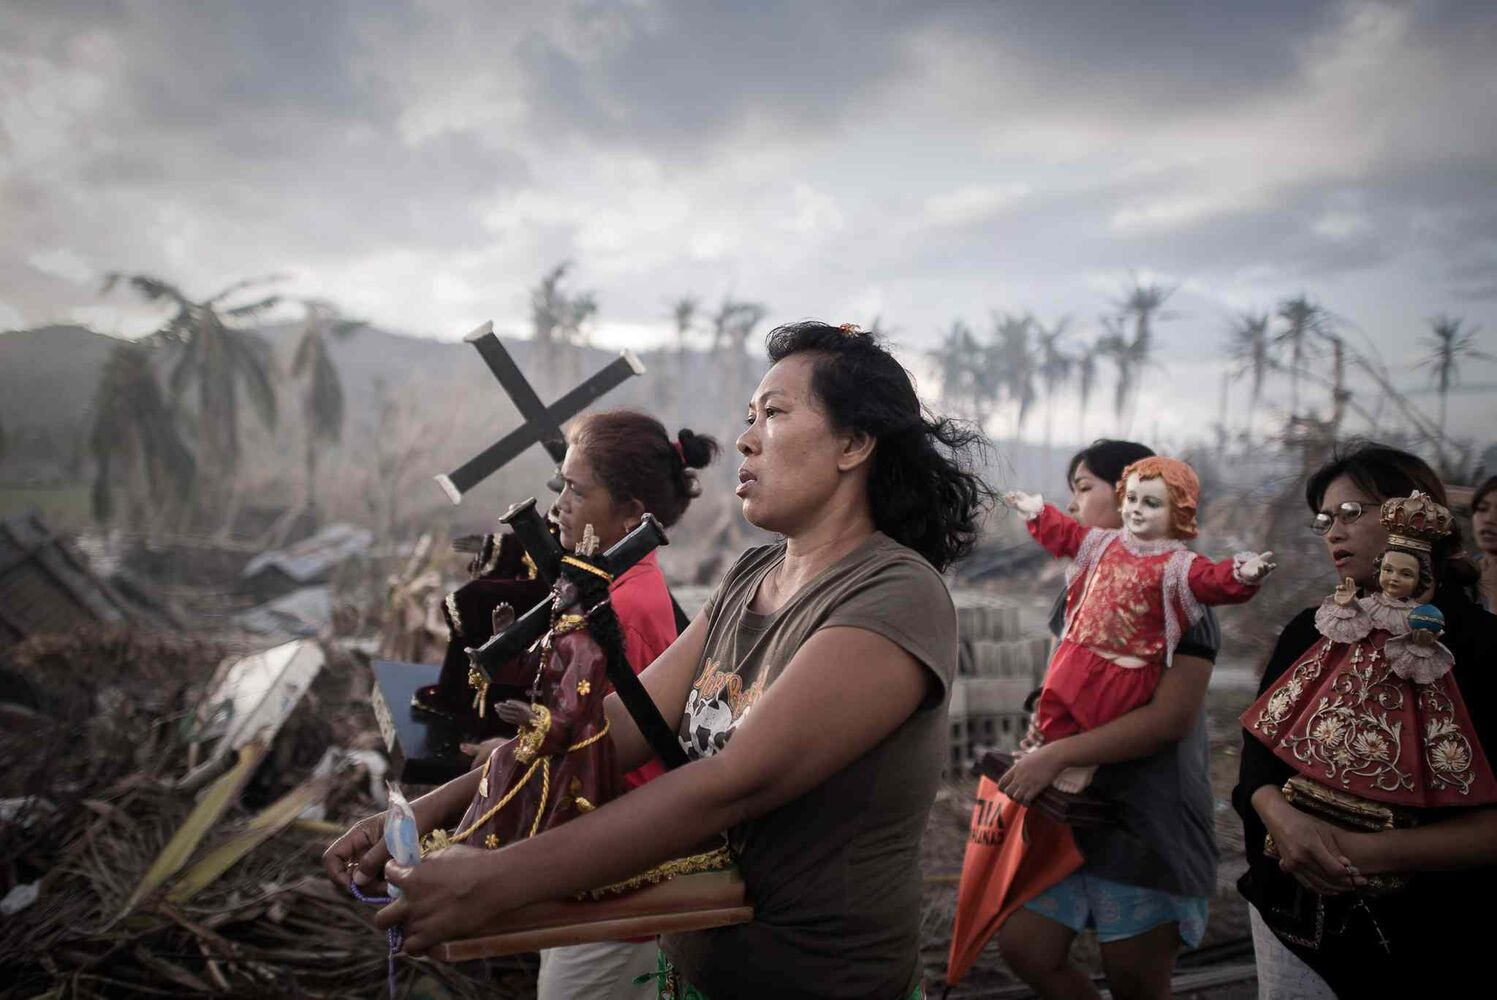 First prize in the Spot News Single category by Phillipe Lopez of France<p>  Survivors of typhoon Haiyan march during a religious procession in Tolosa, on the eastern island of Leyte, Philippines, Nov. 18, 2013. One of the strongest cyclones ever recorded, Haiyan left 8,000 people dead and missing and more than four million homeless after it hit the central Philippines.